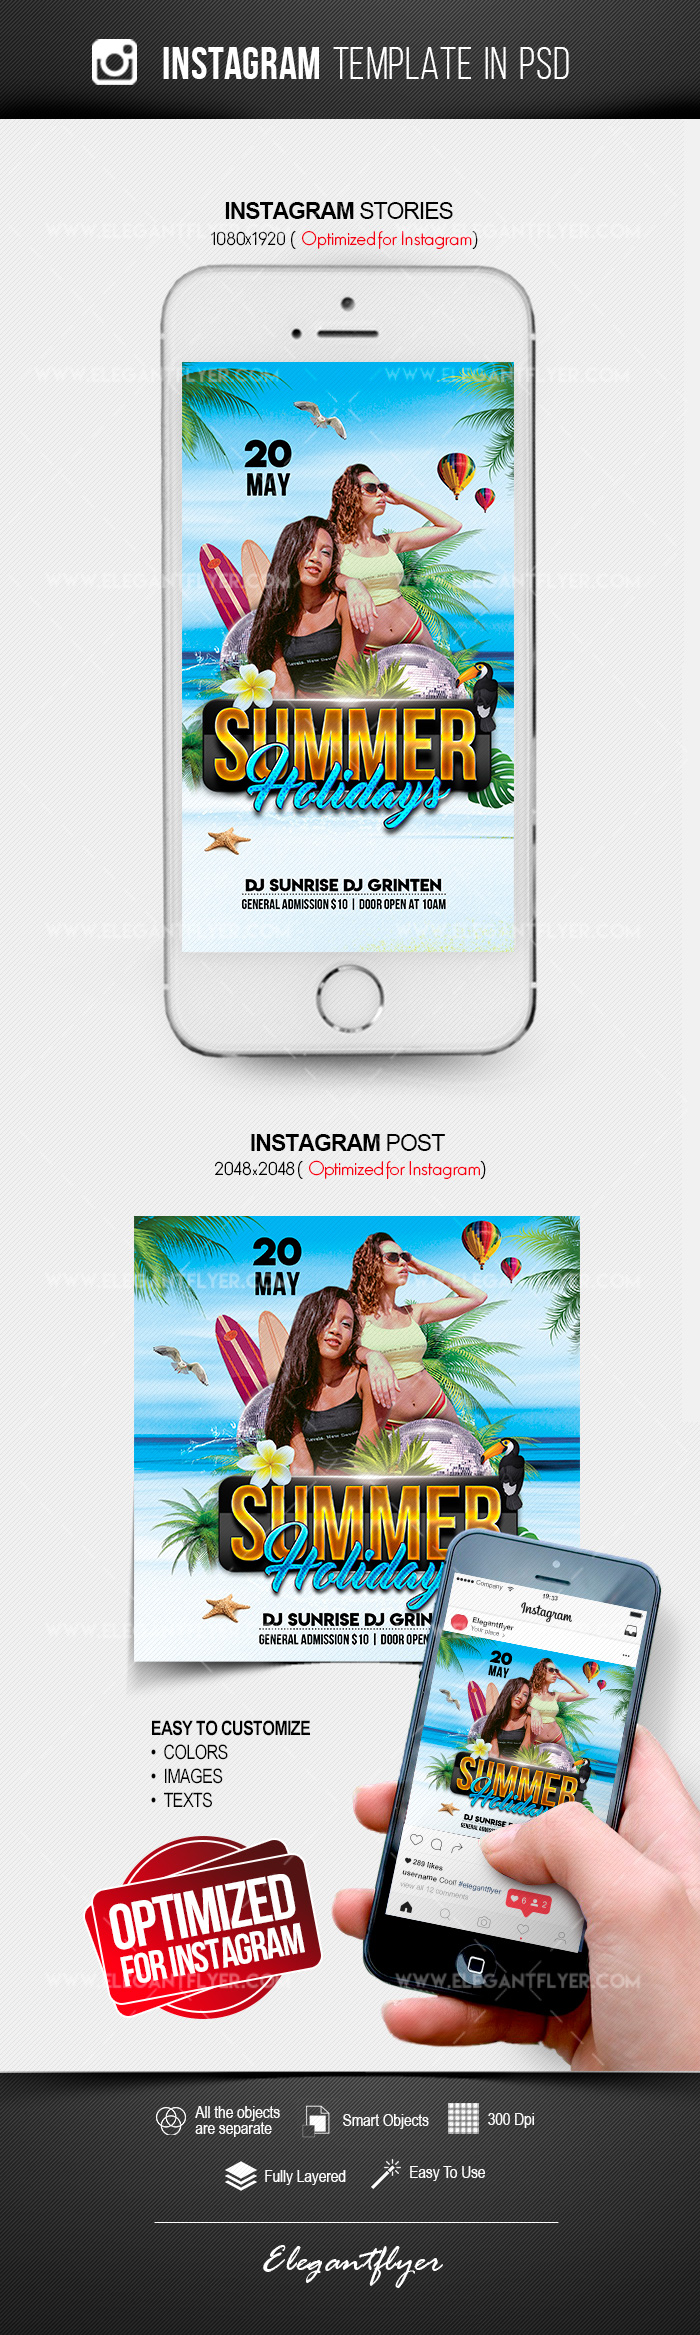 Summer Holidays – Free Instagram Stories Template in PSD + Post Templates